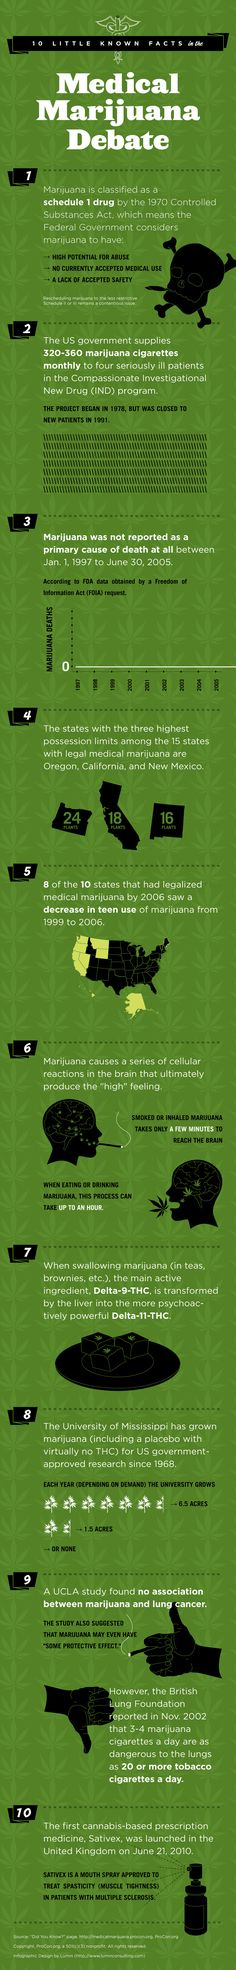 Facebook Twitter Buffer Pinterest reddit StumbleUpon Tumblr Here is a very informative infographic that shows some of the clear disparities between the things that people say and what is really going on in the medical marijuana war.